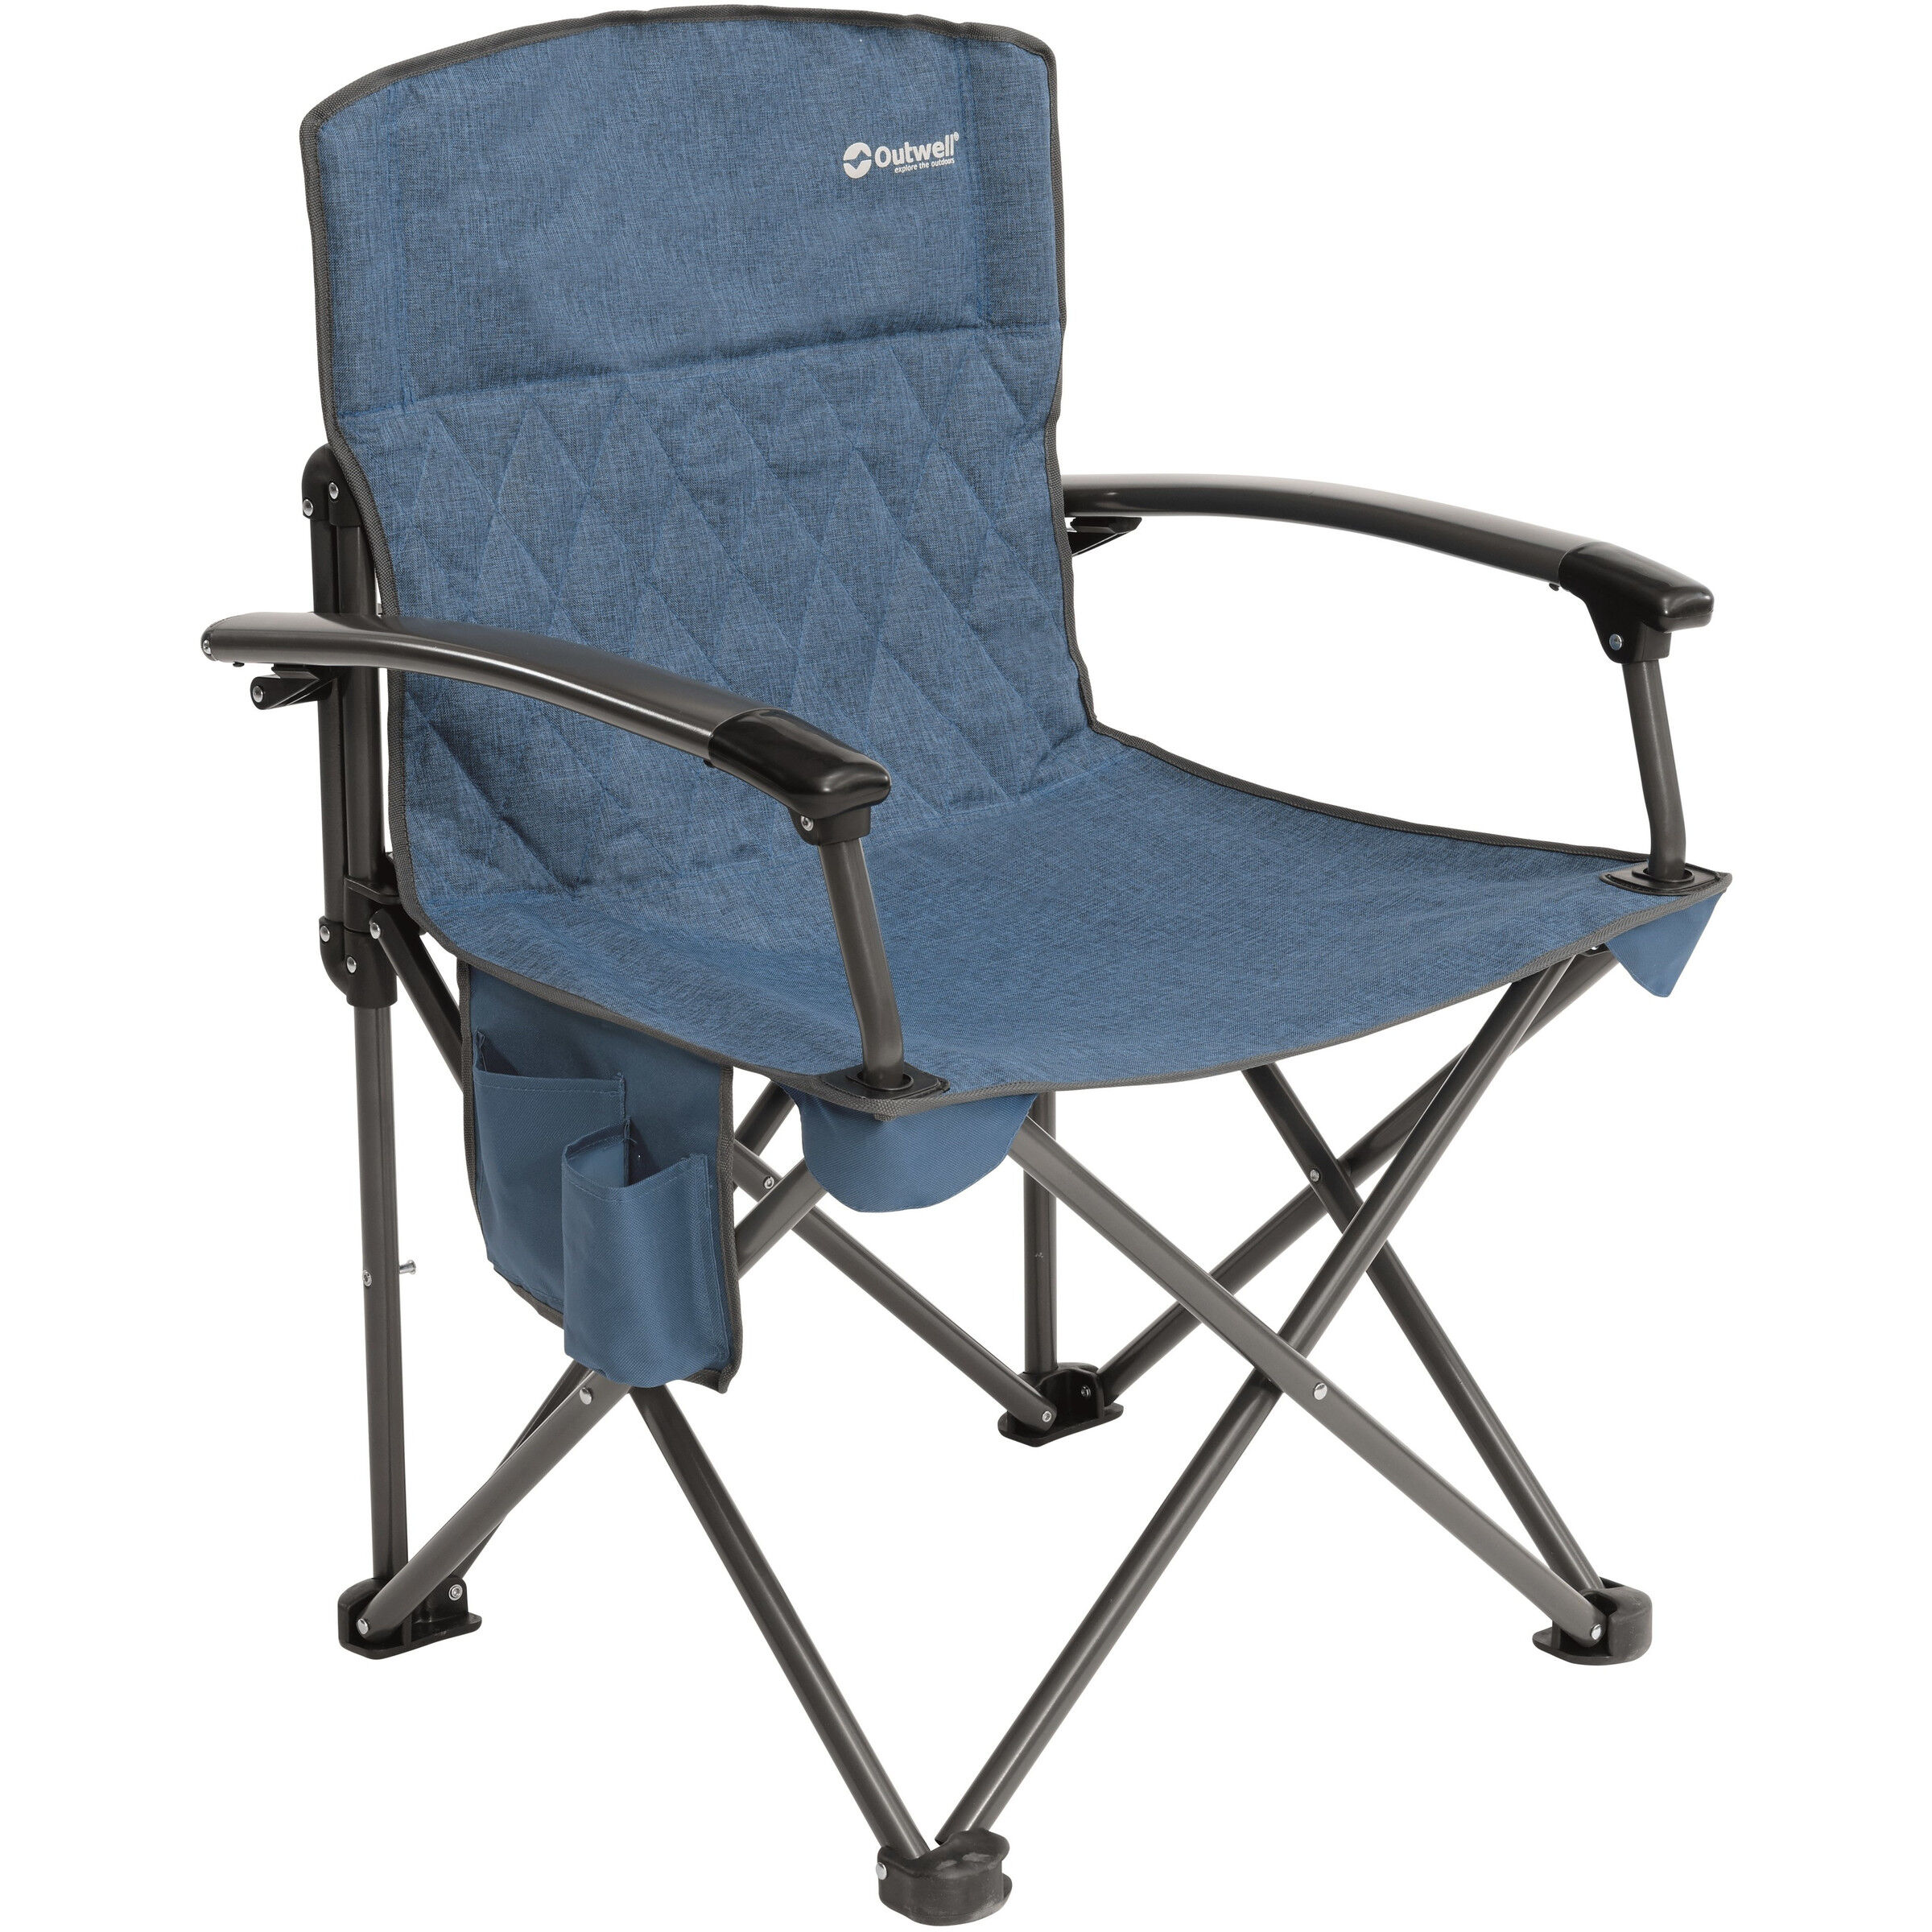 Outwell Casilda Chair Claret 2019 Campingstuhl